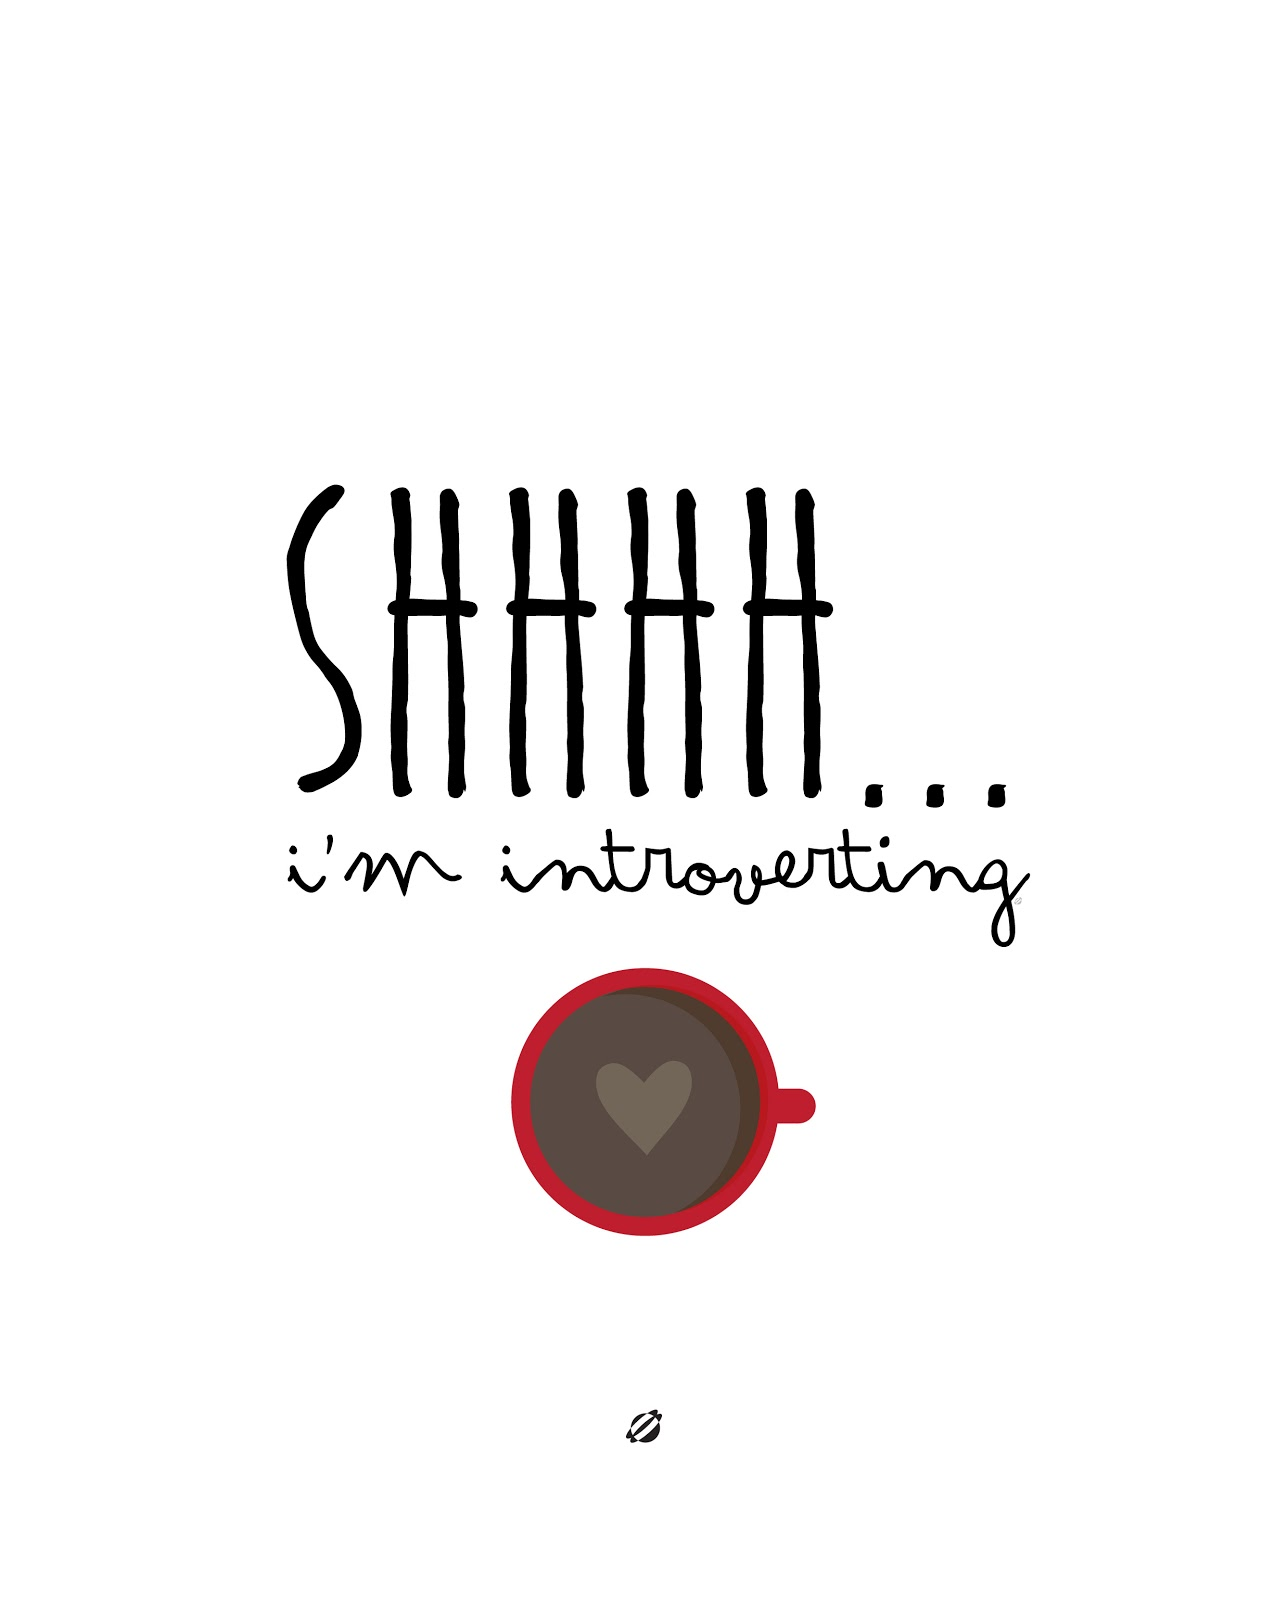 LostBumblebee ©2015 MDBN :: Shhhh... I'm Introverting :: Free - Donate to Download - Printable :: Personal Use Only. Coffee, Home decor, Printable, LostBumblebee